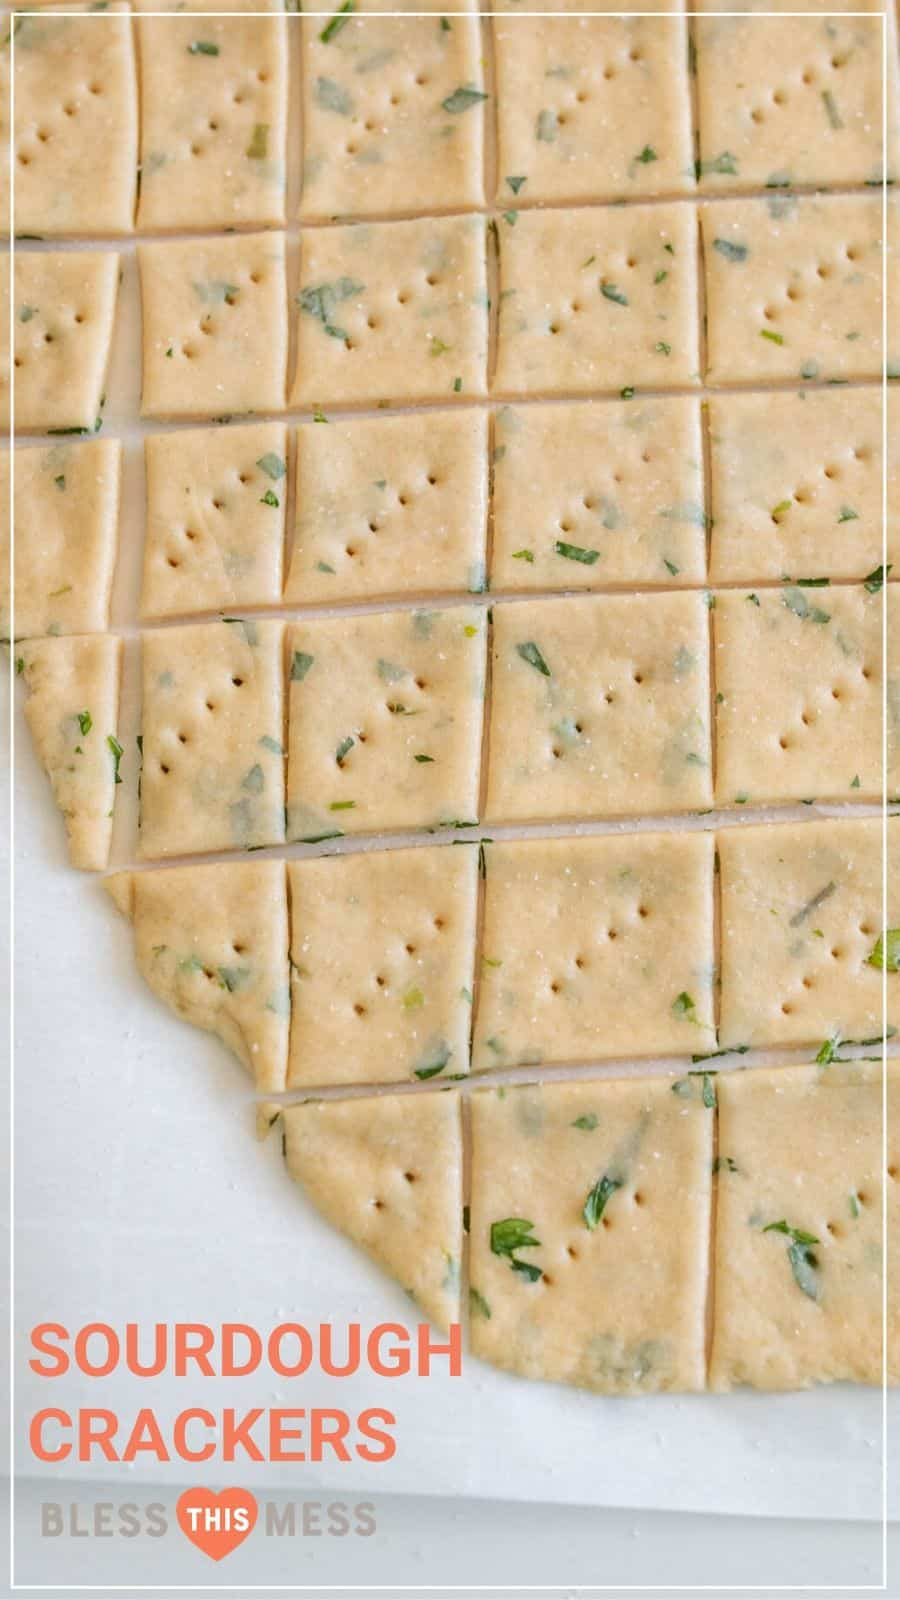 herb and garlic sour dough crackers before baking